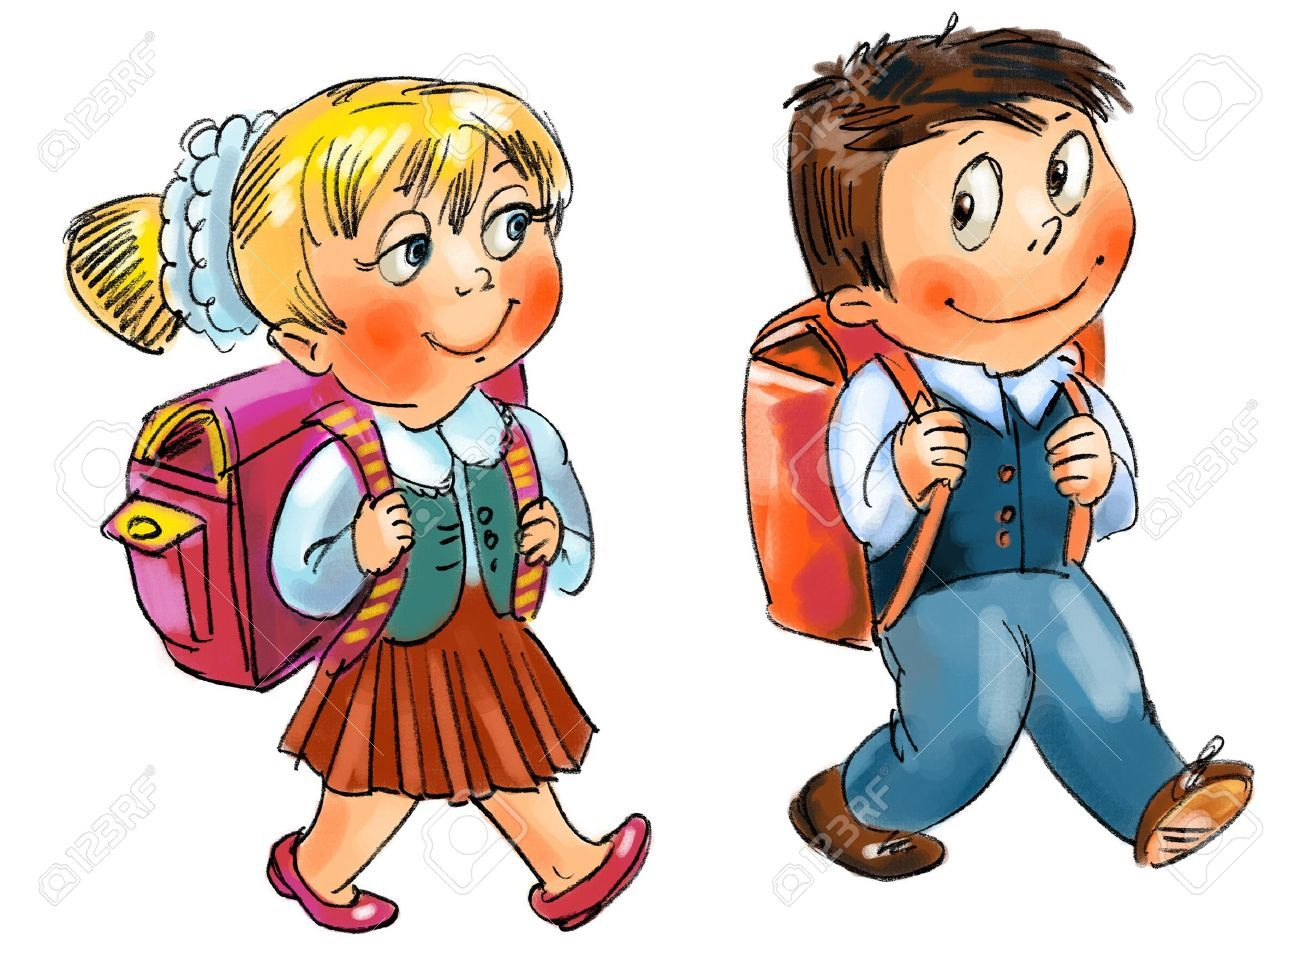 Clipart of a girl going to school png royalty free download Stock Photo | Daily activities | How to draw hands, School clipart ... png royalty free download